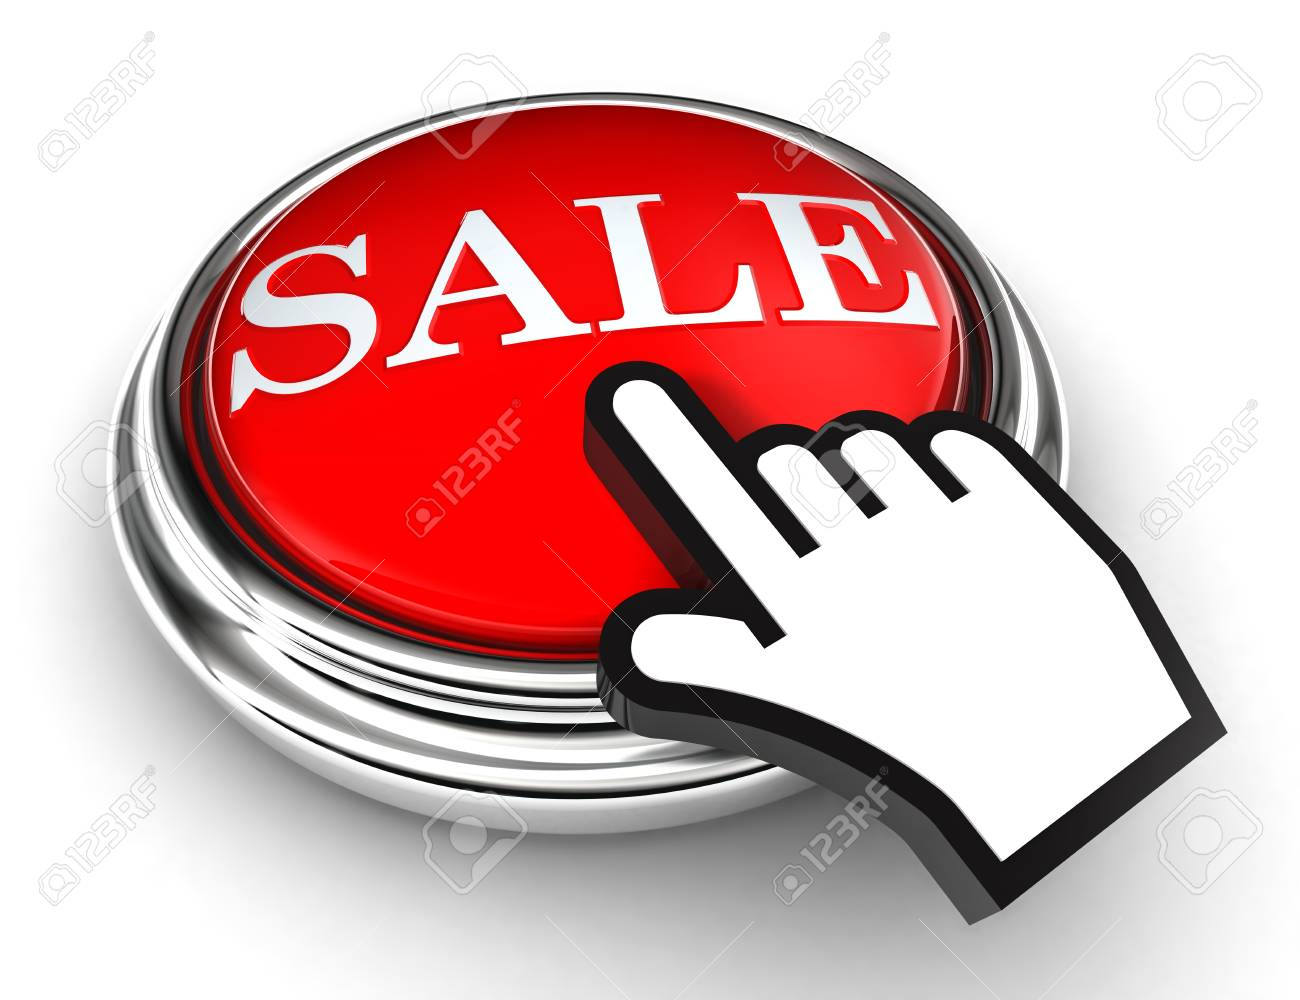 sale red button and cursor hand on white background Stock Photo - 13264814